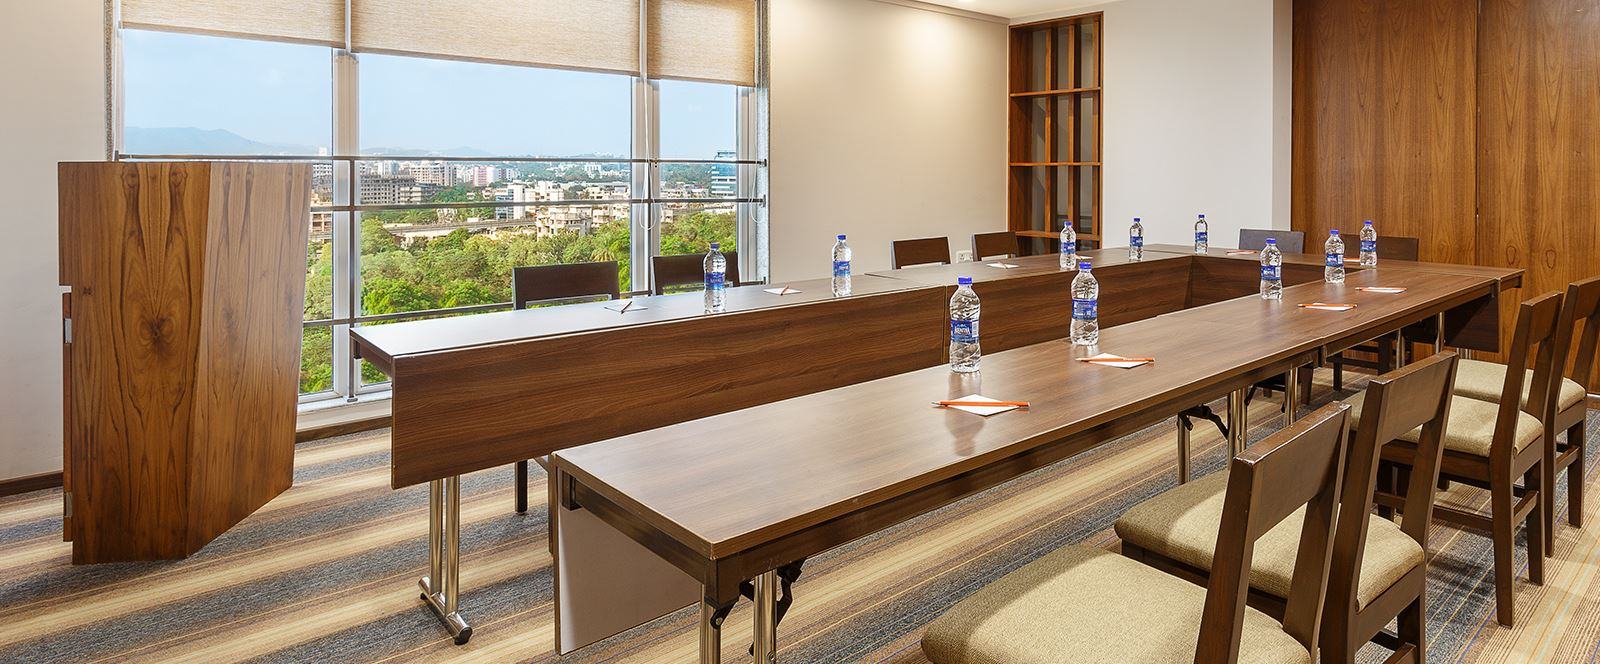 Ginger Hotels Mumbai Andheri Meeting Room